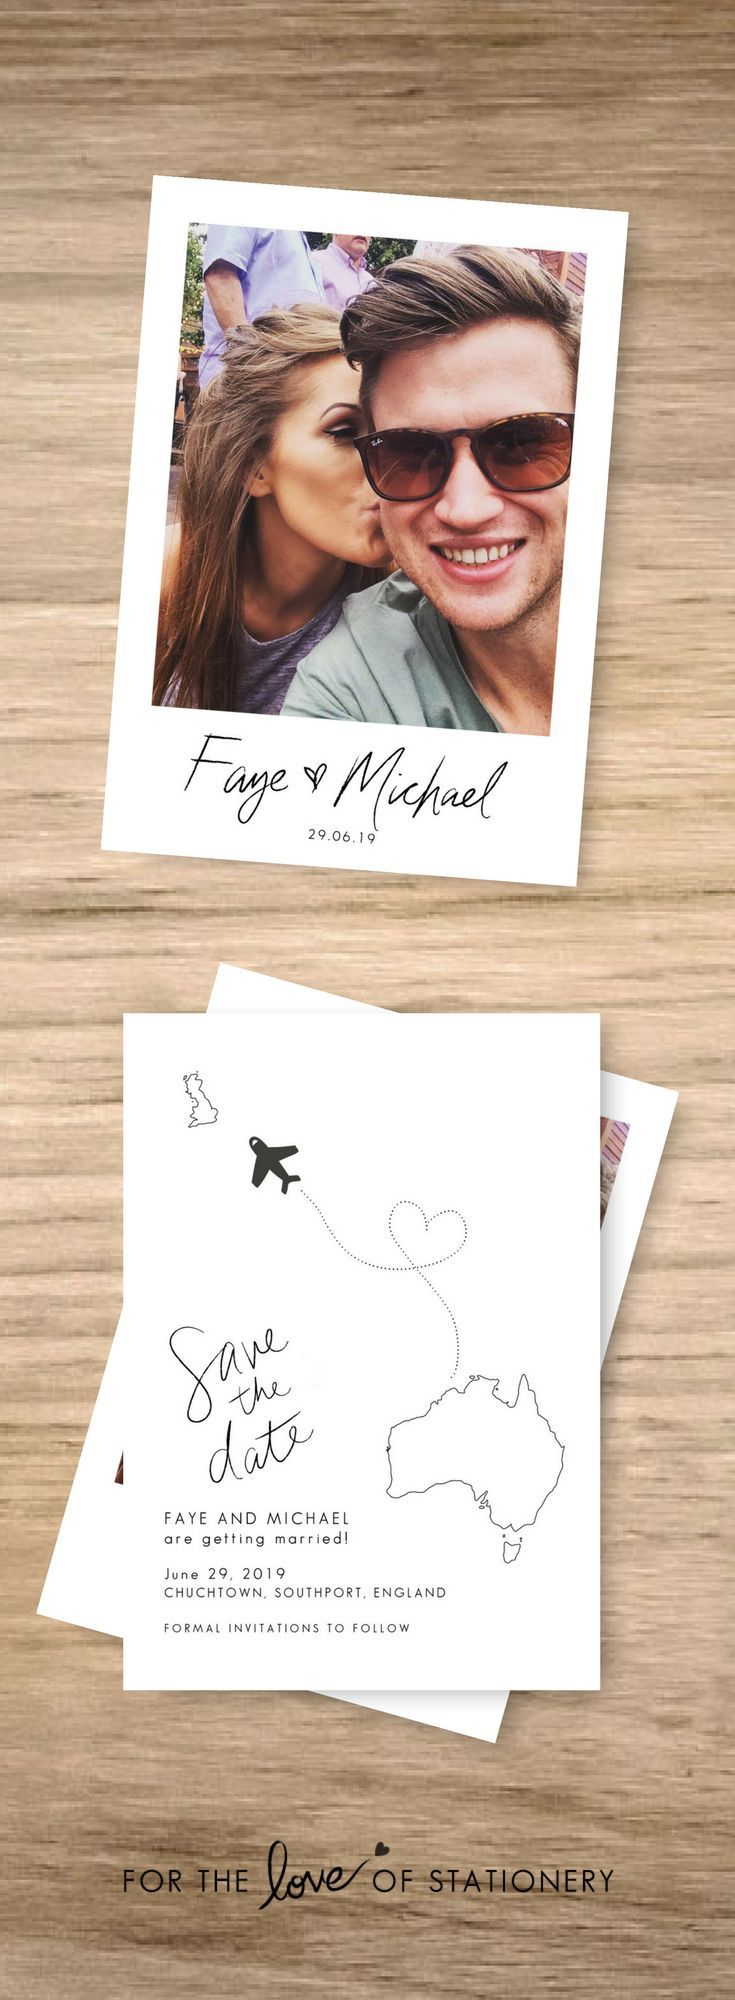 Personalised Save the Date Postcards with Photos is part of Wedding saving - Feeling flustered and don't know where to start with your save the dates  Let me help you! Click here to download a FREE info pack for your personalised save the date postcards with photos